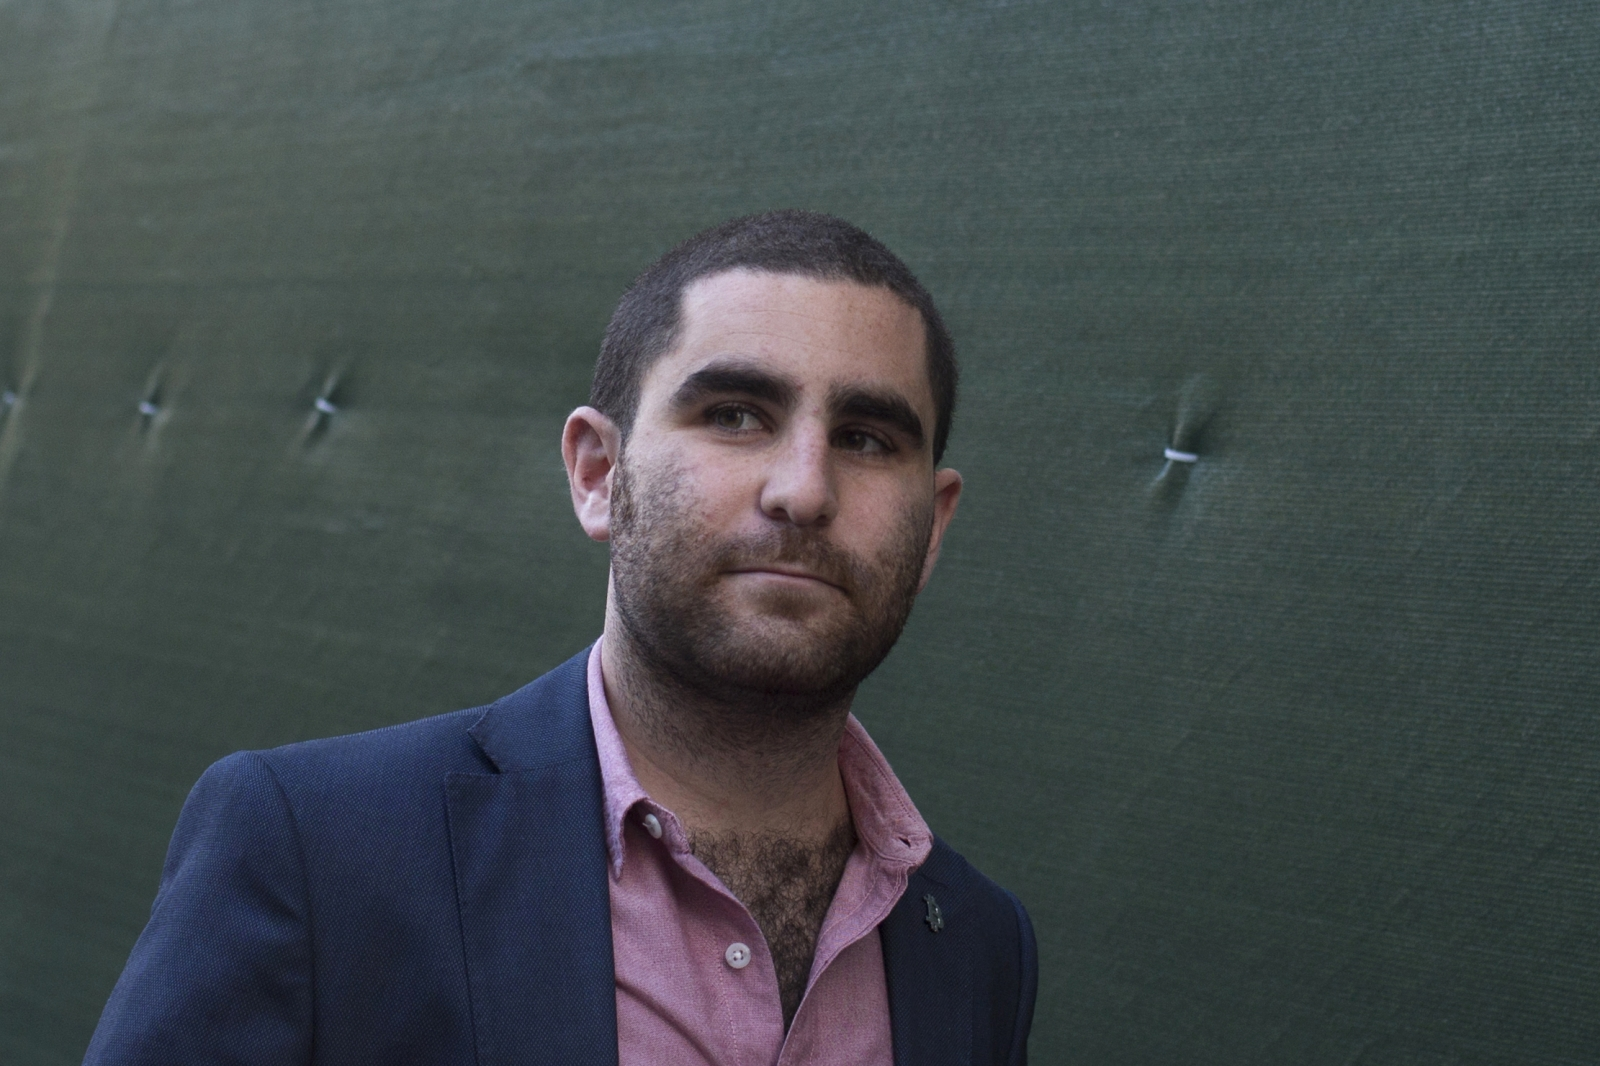 Bitcoin promoter Charlie Shrem walks out of federal court in Lower Manhattan, New York